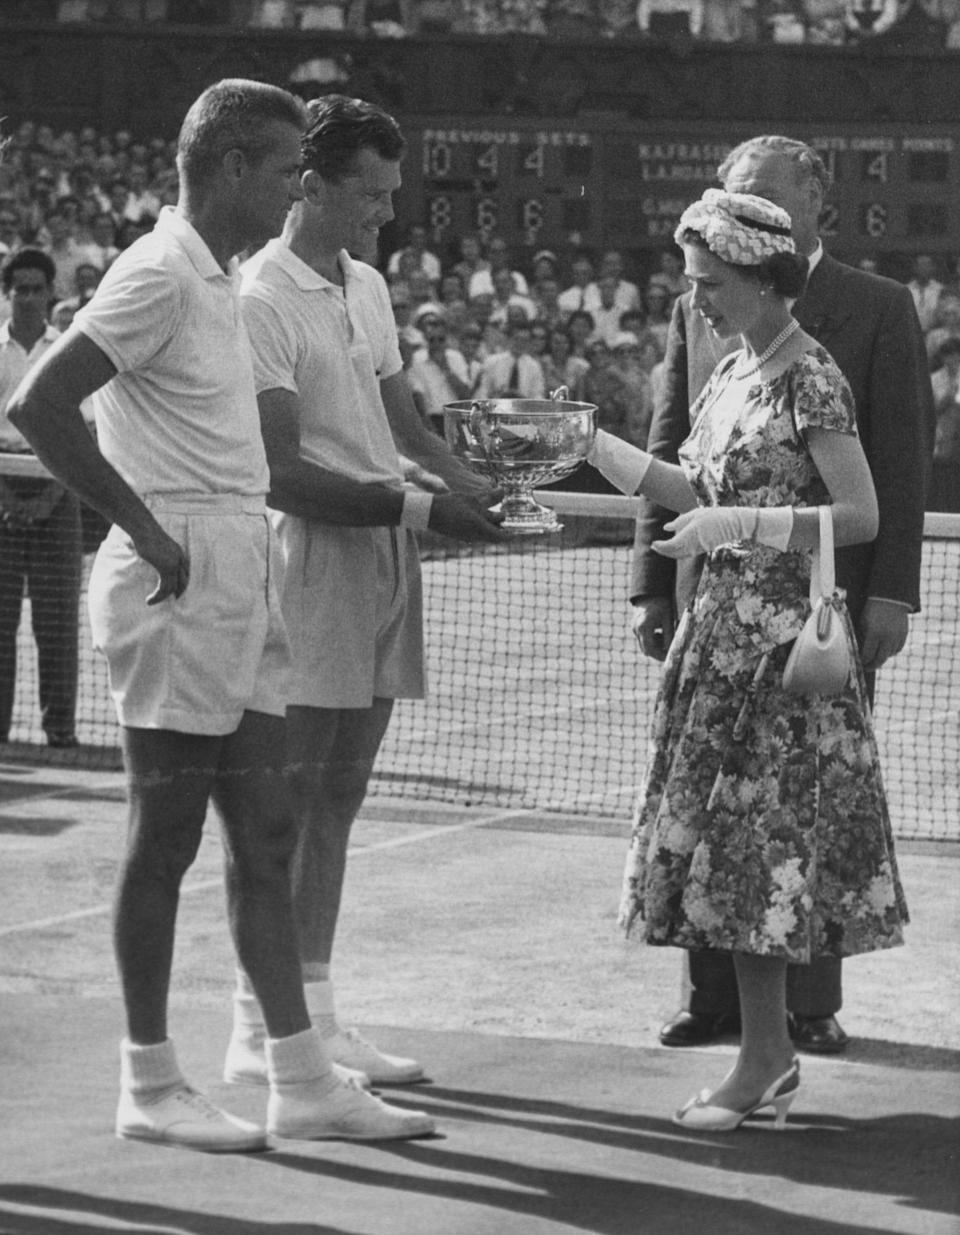 The Queen presents the Wimbledon Men's Doubles trophy to Gardnar Mulloy and Budge Patty, July 1957 - Paul Popper/Popperfoto via Getty Images